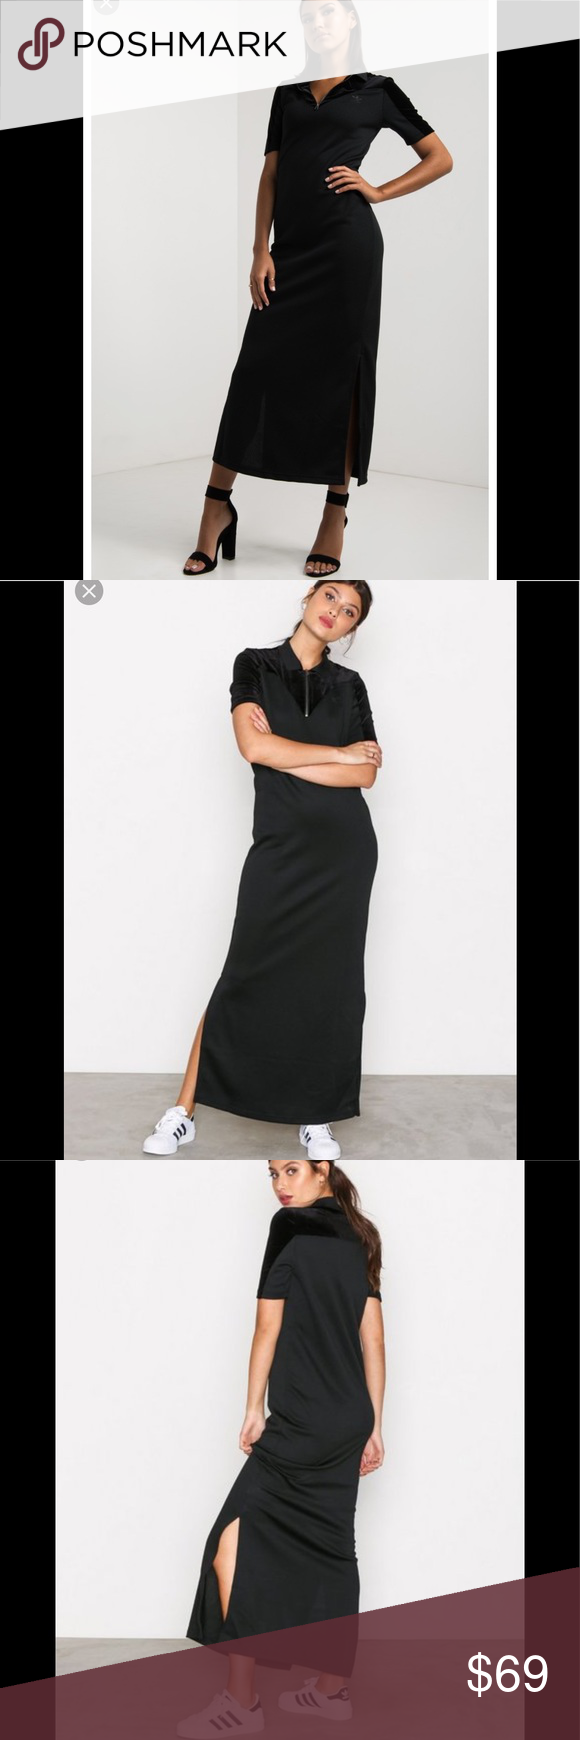 c81660e7612 Adidas VV long T dress velvet vibes polo maxi NWT Brand new with tags Feel  free to ask questions adidas Dresses Maxi